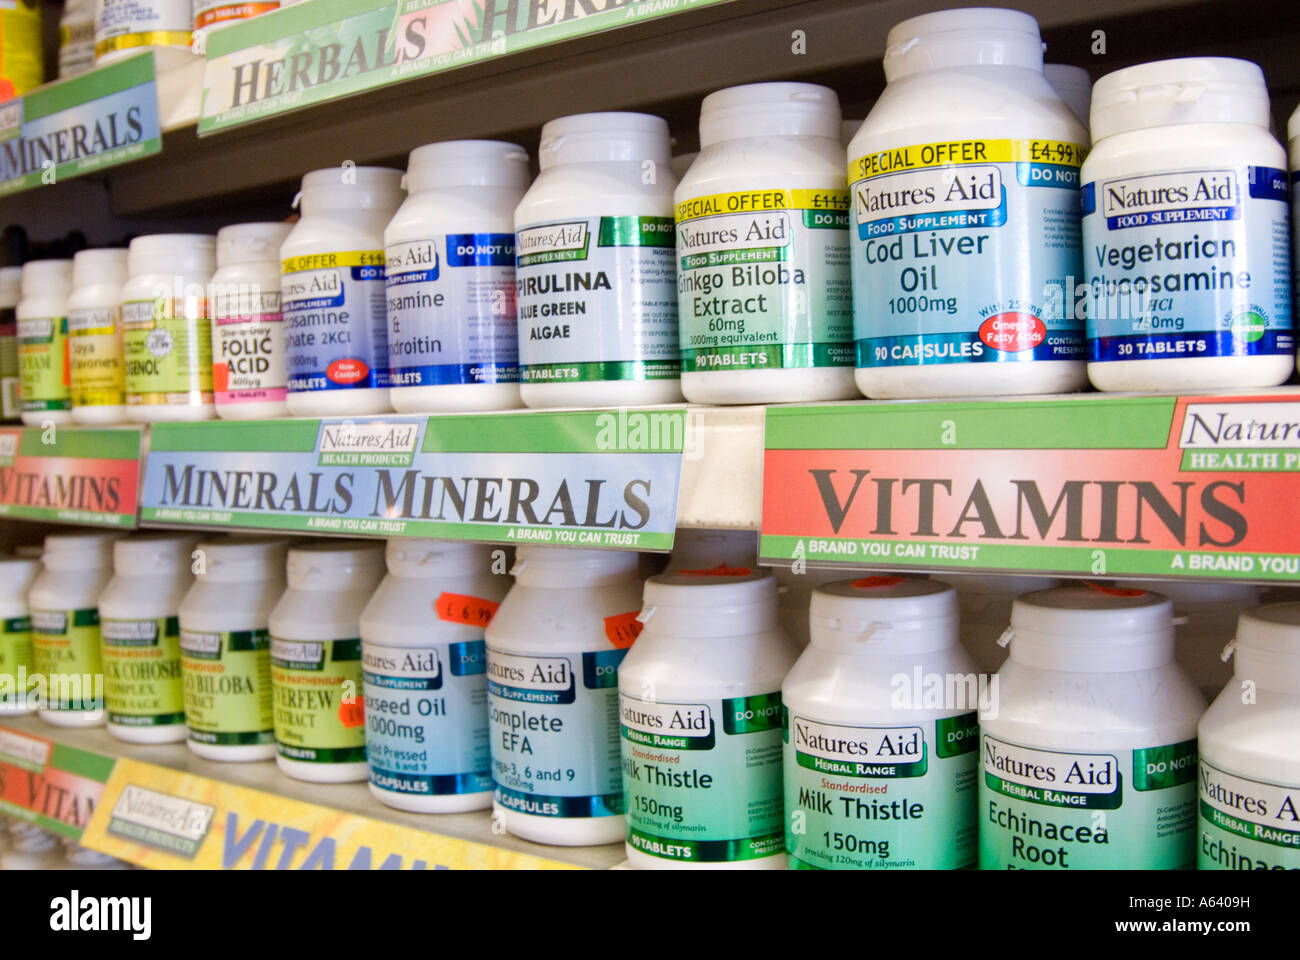 Vitamins and health supplements